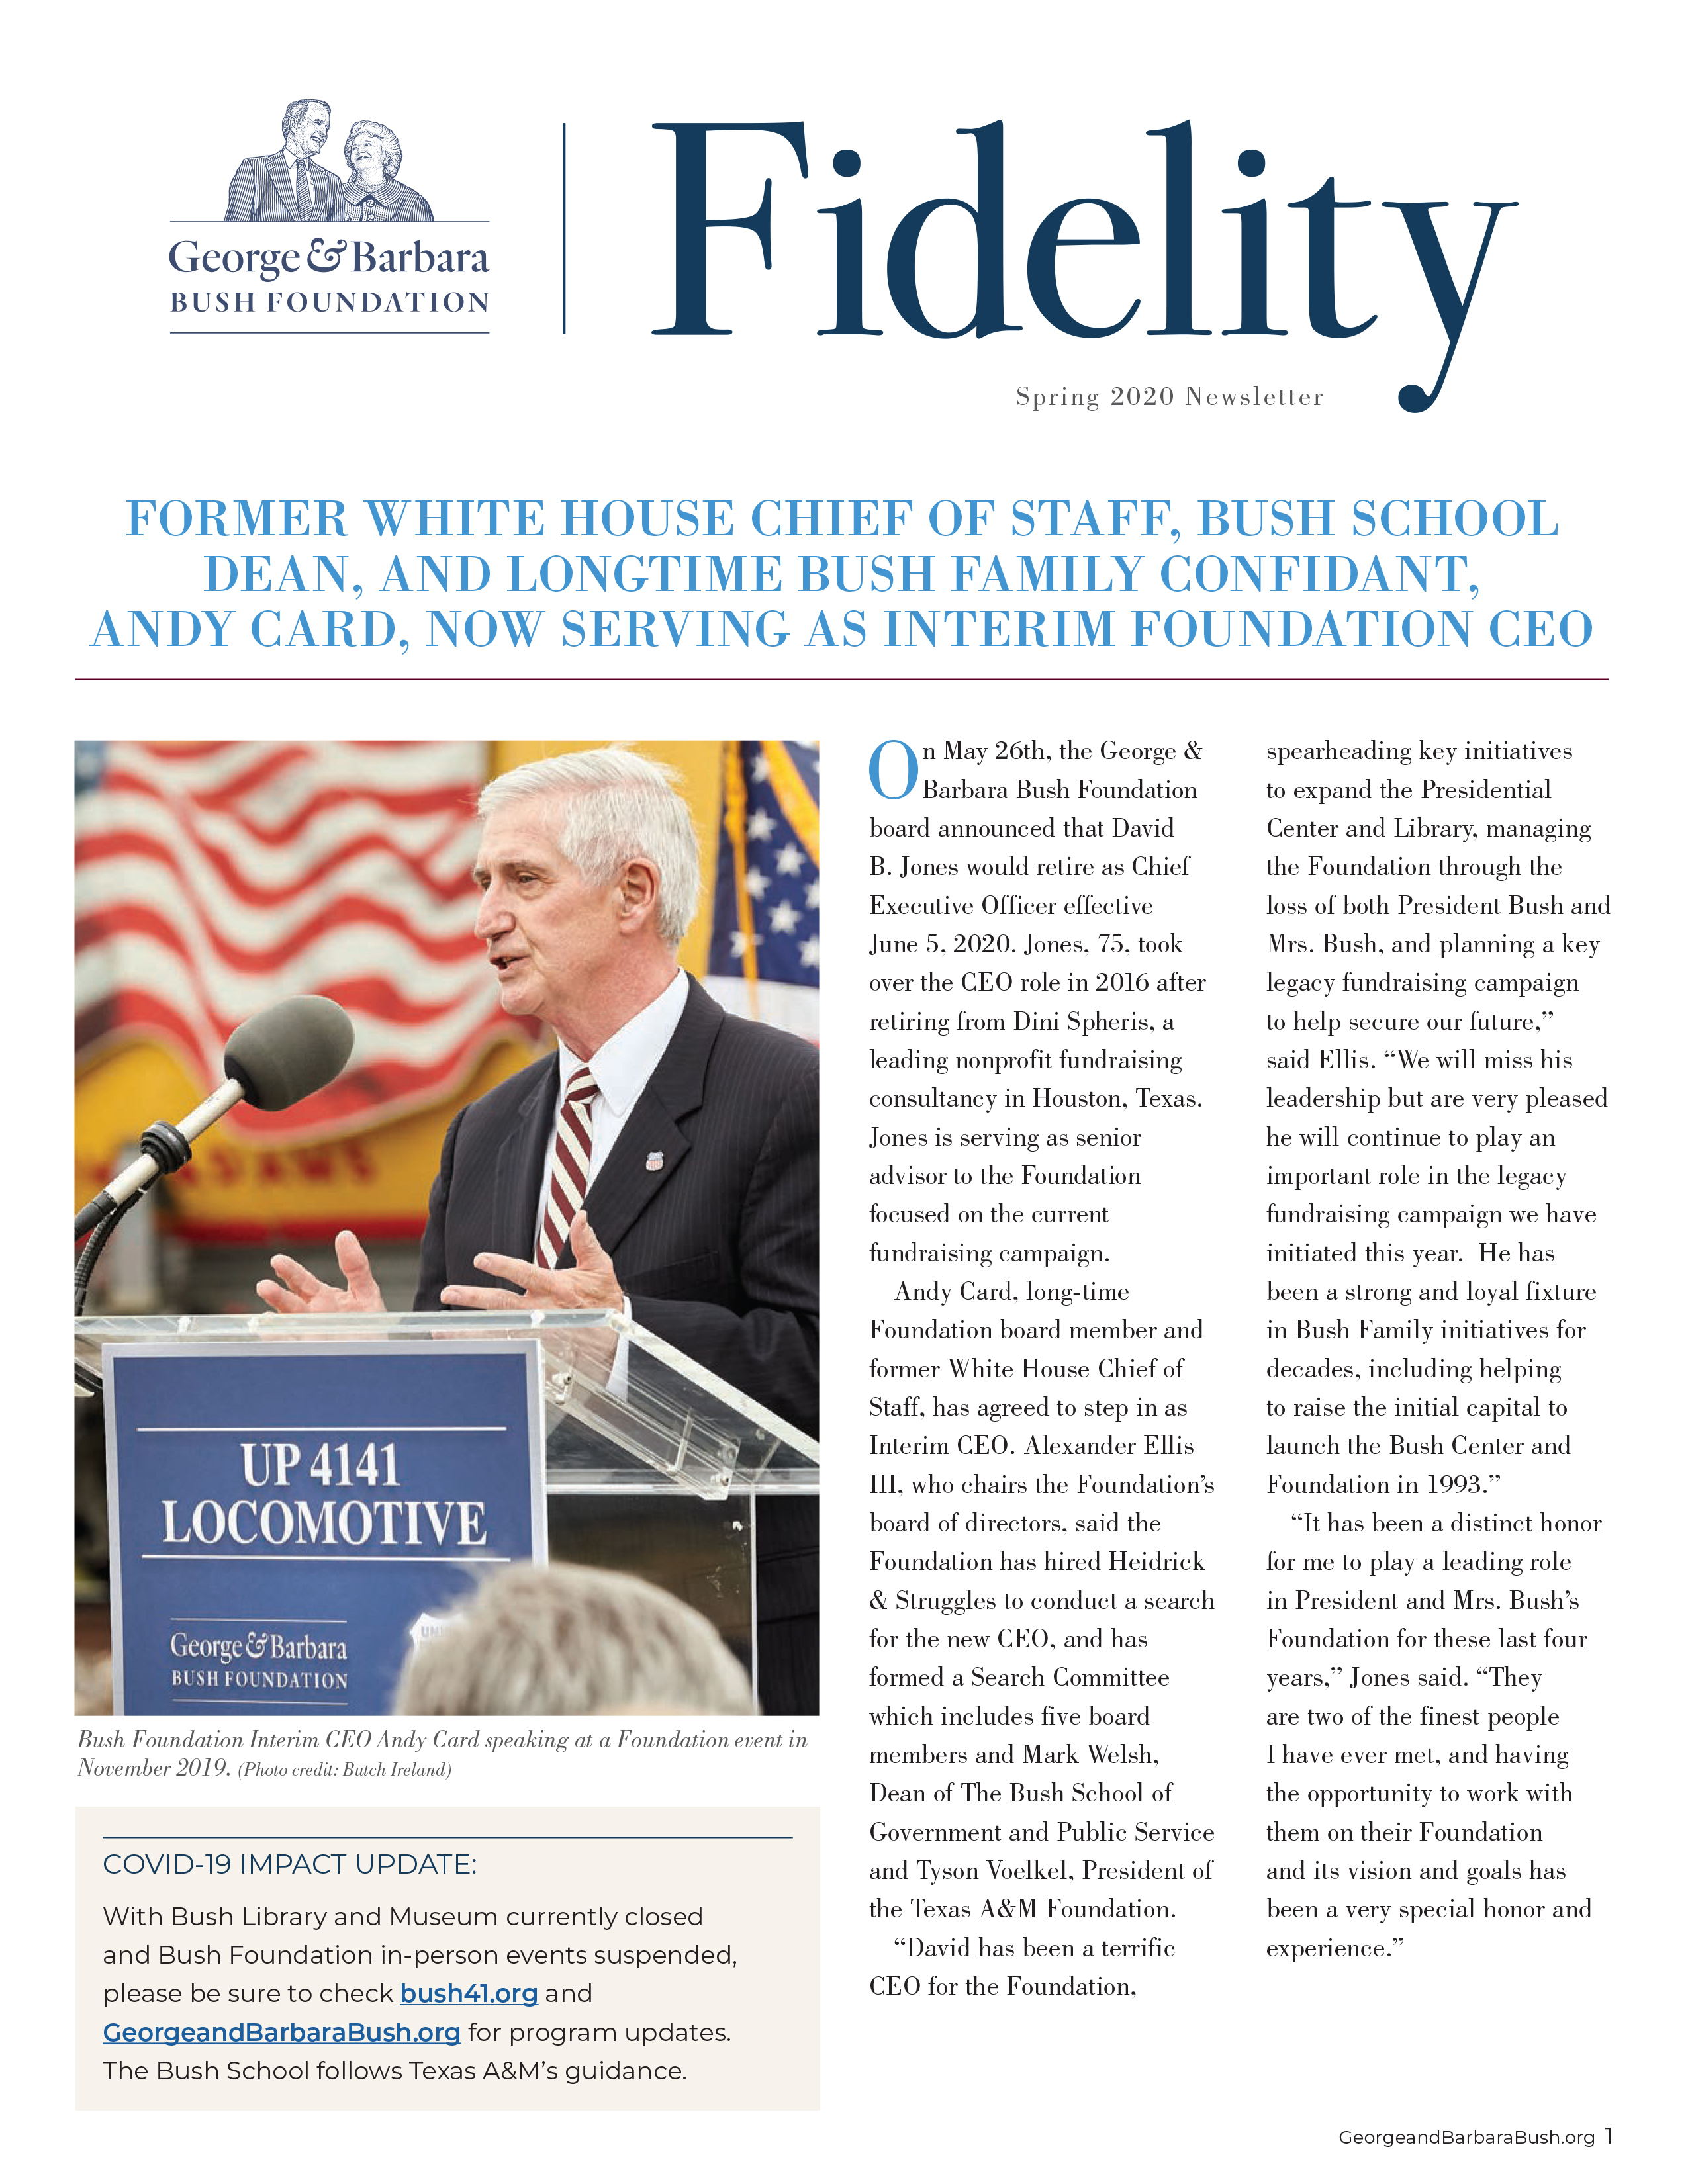 Spring 2020 Newsletter front page